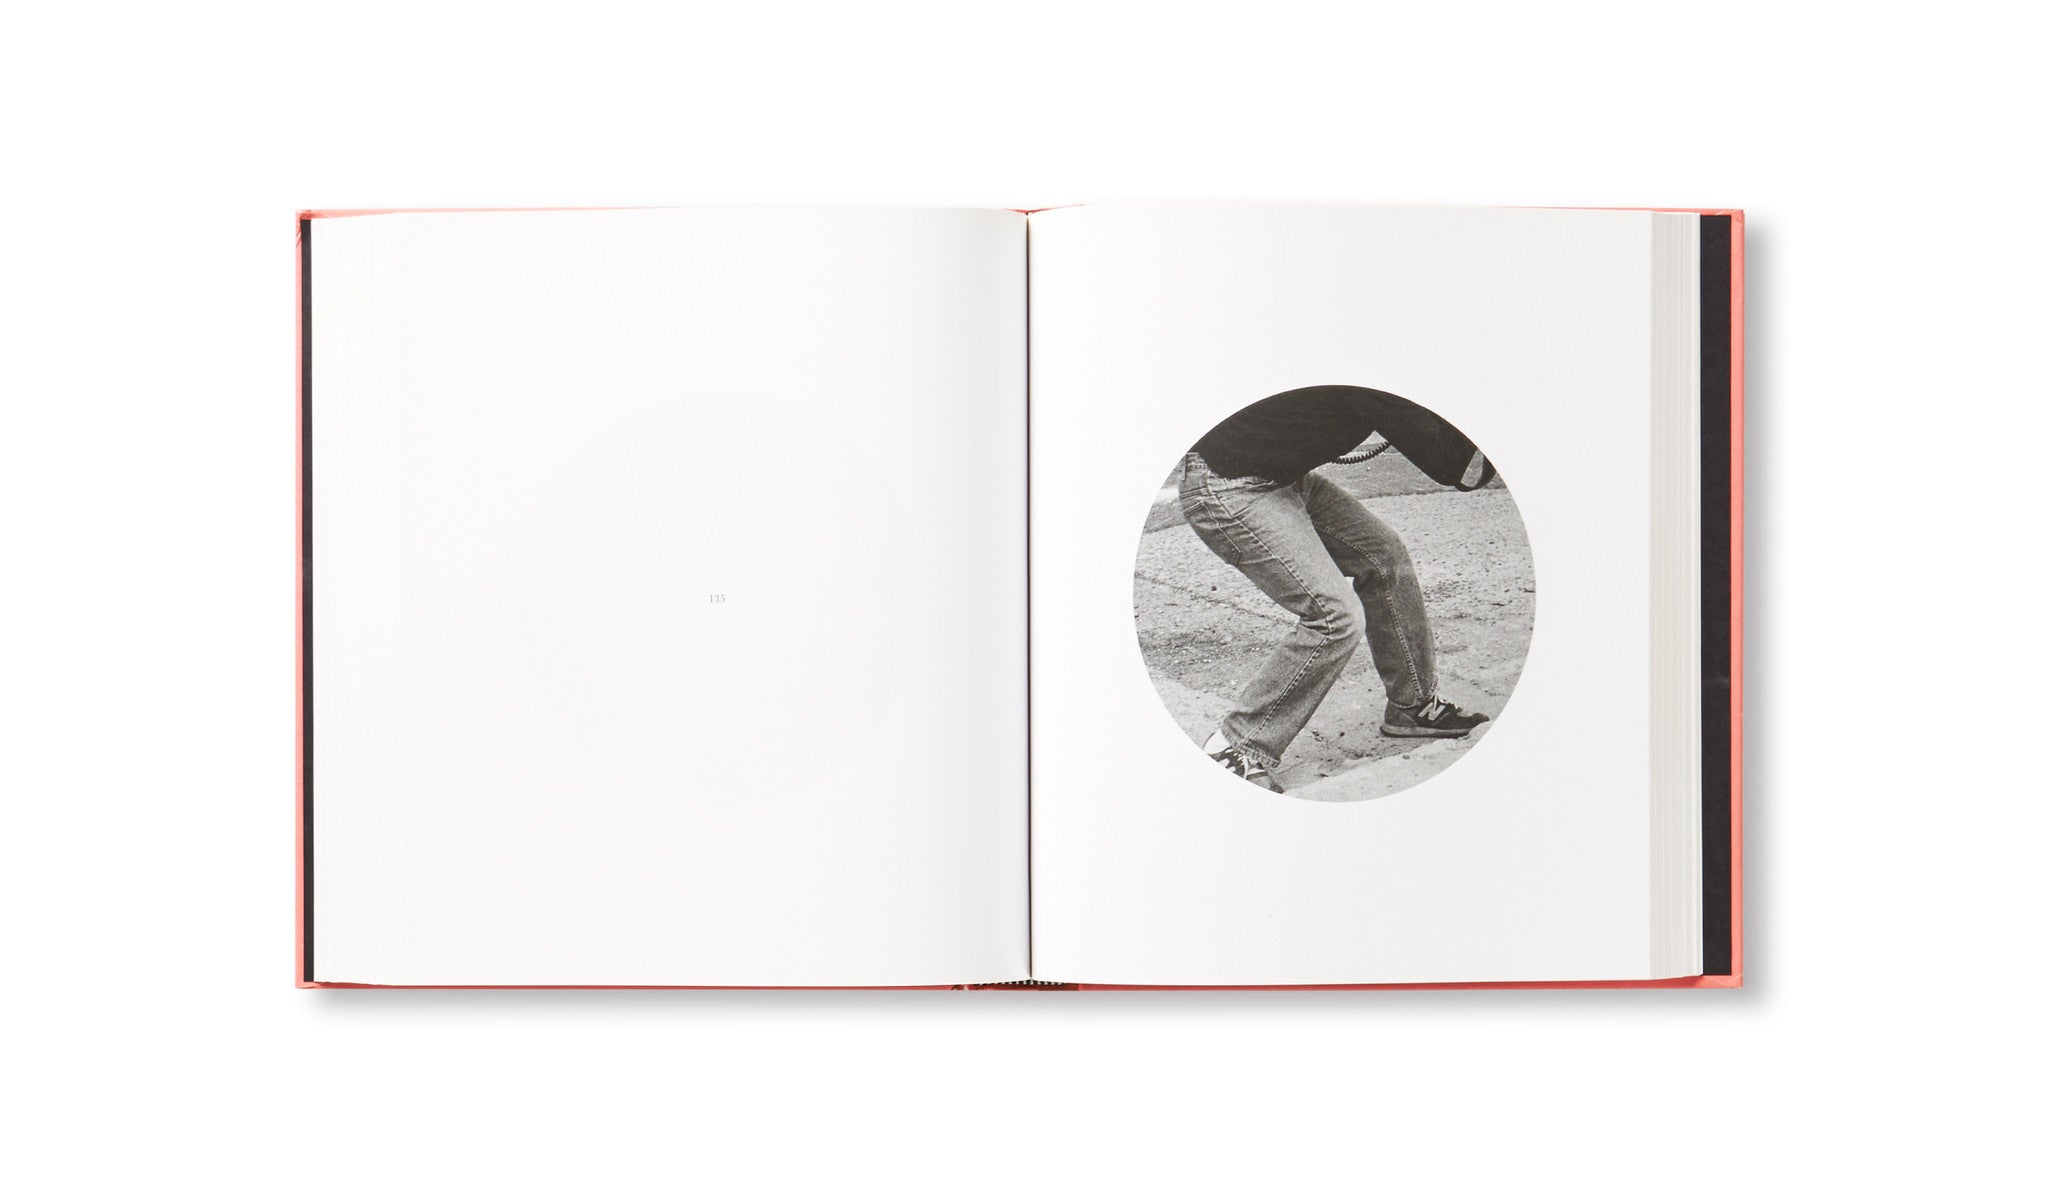 PEOPLE IN TROUBLE LAUGHING PUSHED TO THE GROUND by Adam Broomberg & Oliver Chanarin